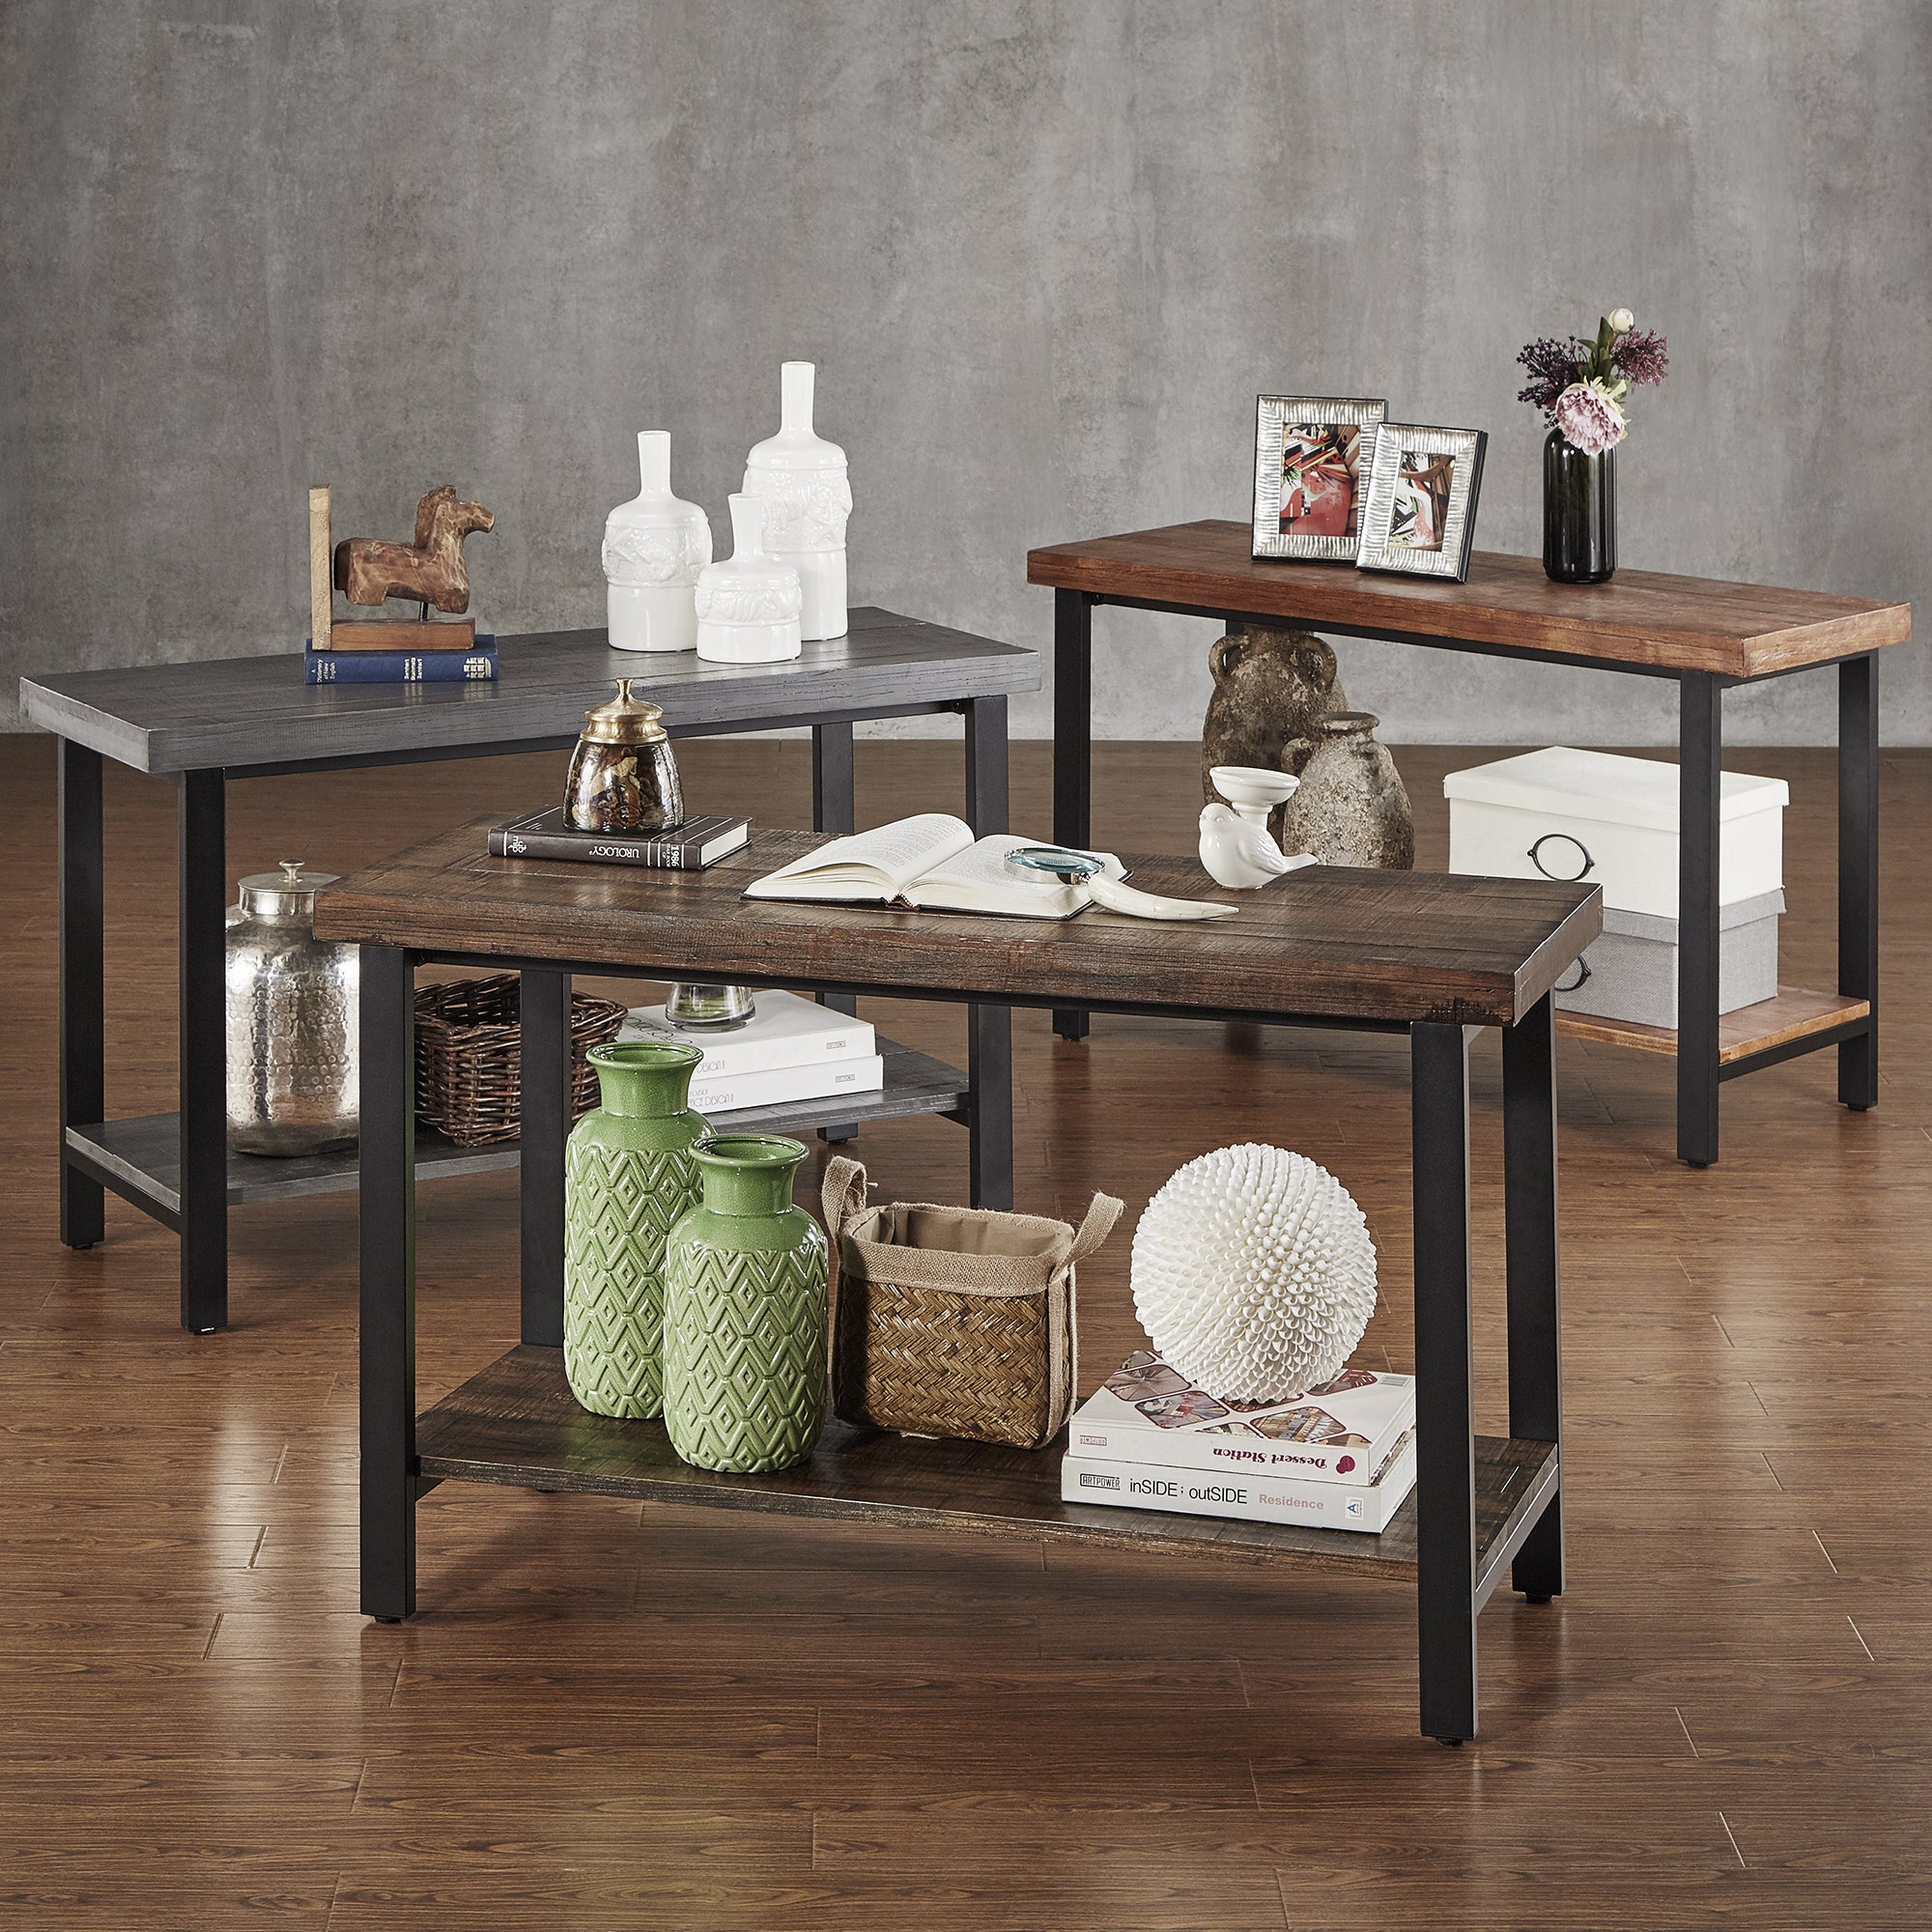 shop cyra industrial reclaimed sofa table tv stand by inspire q rh overstock com Overstock Contemporary Coffee Tables Overstock Contemporary Coffee Tables